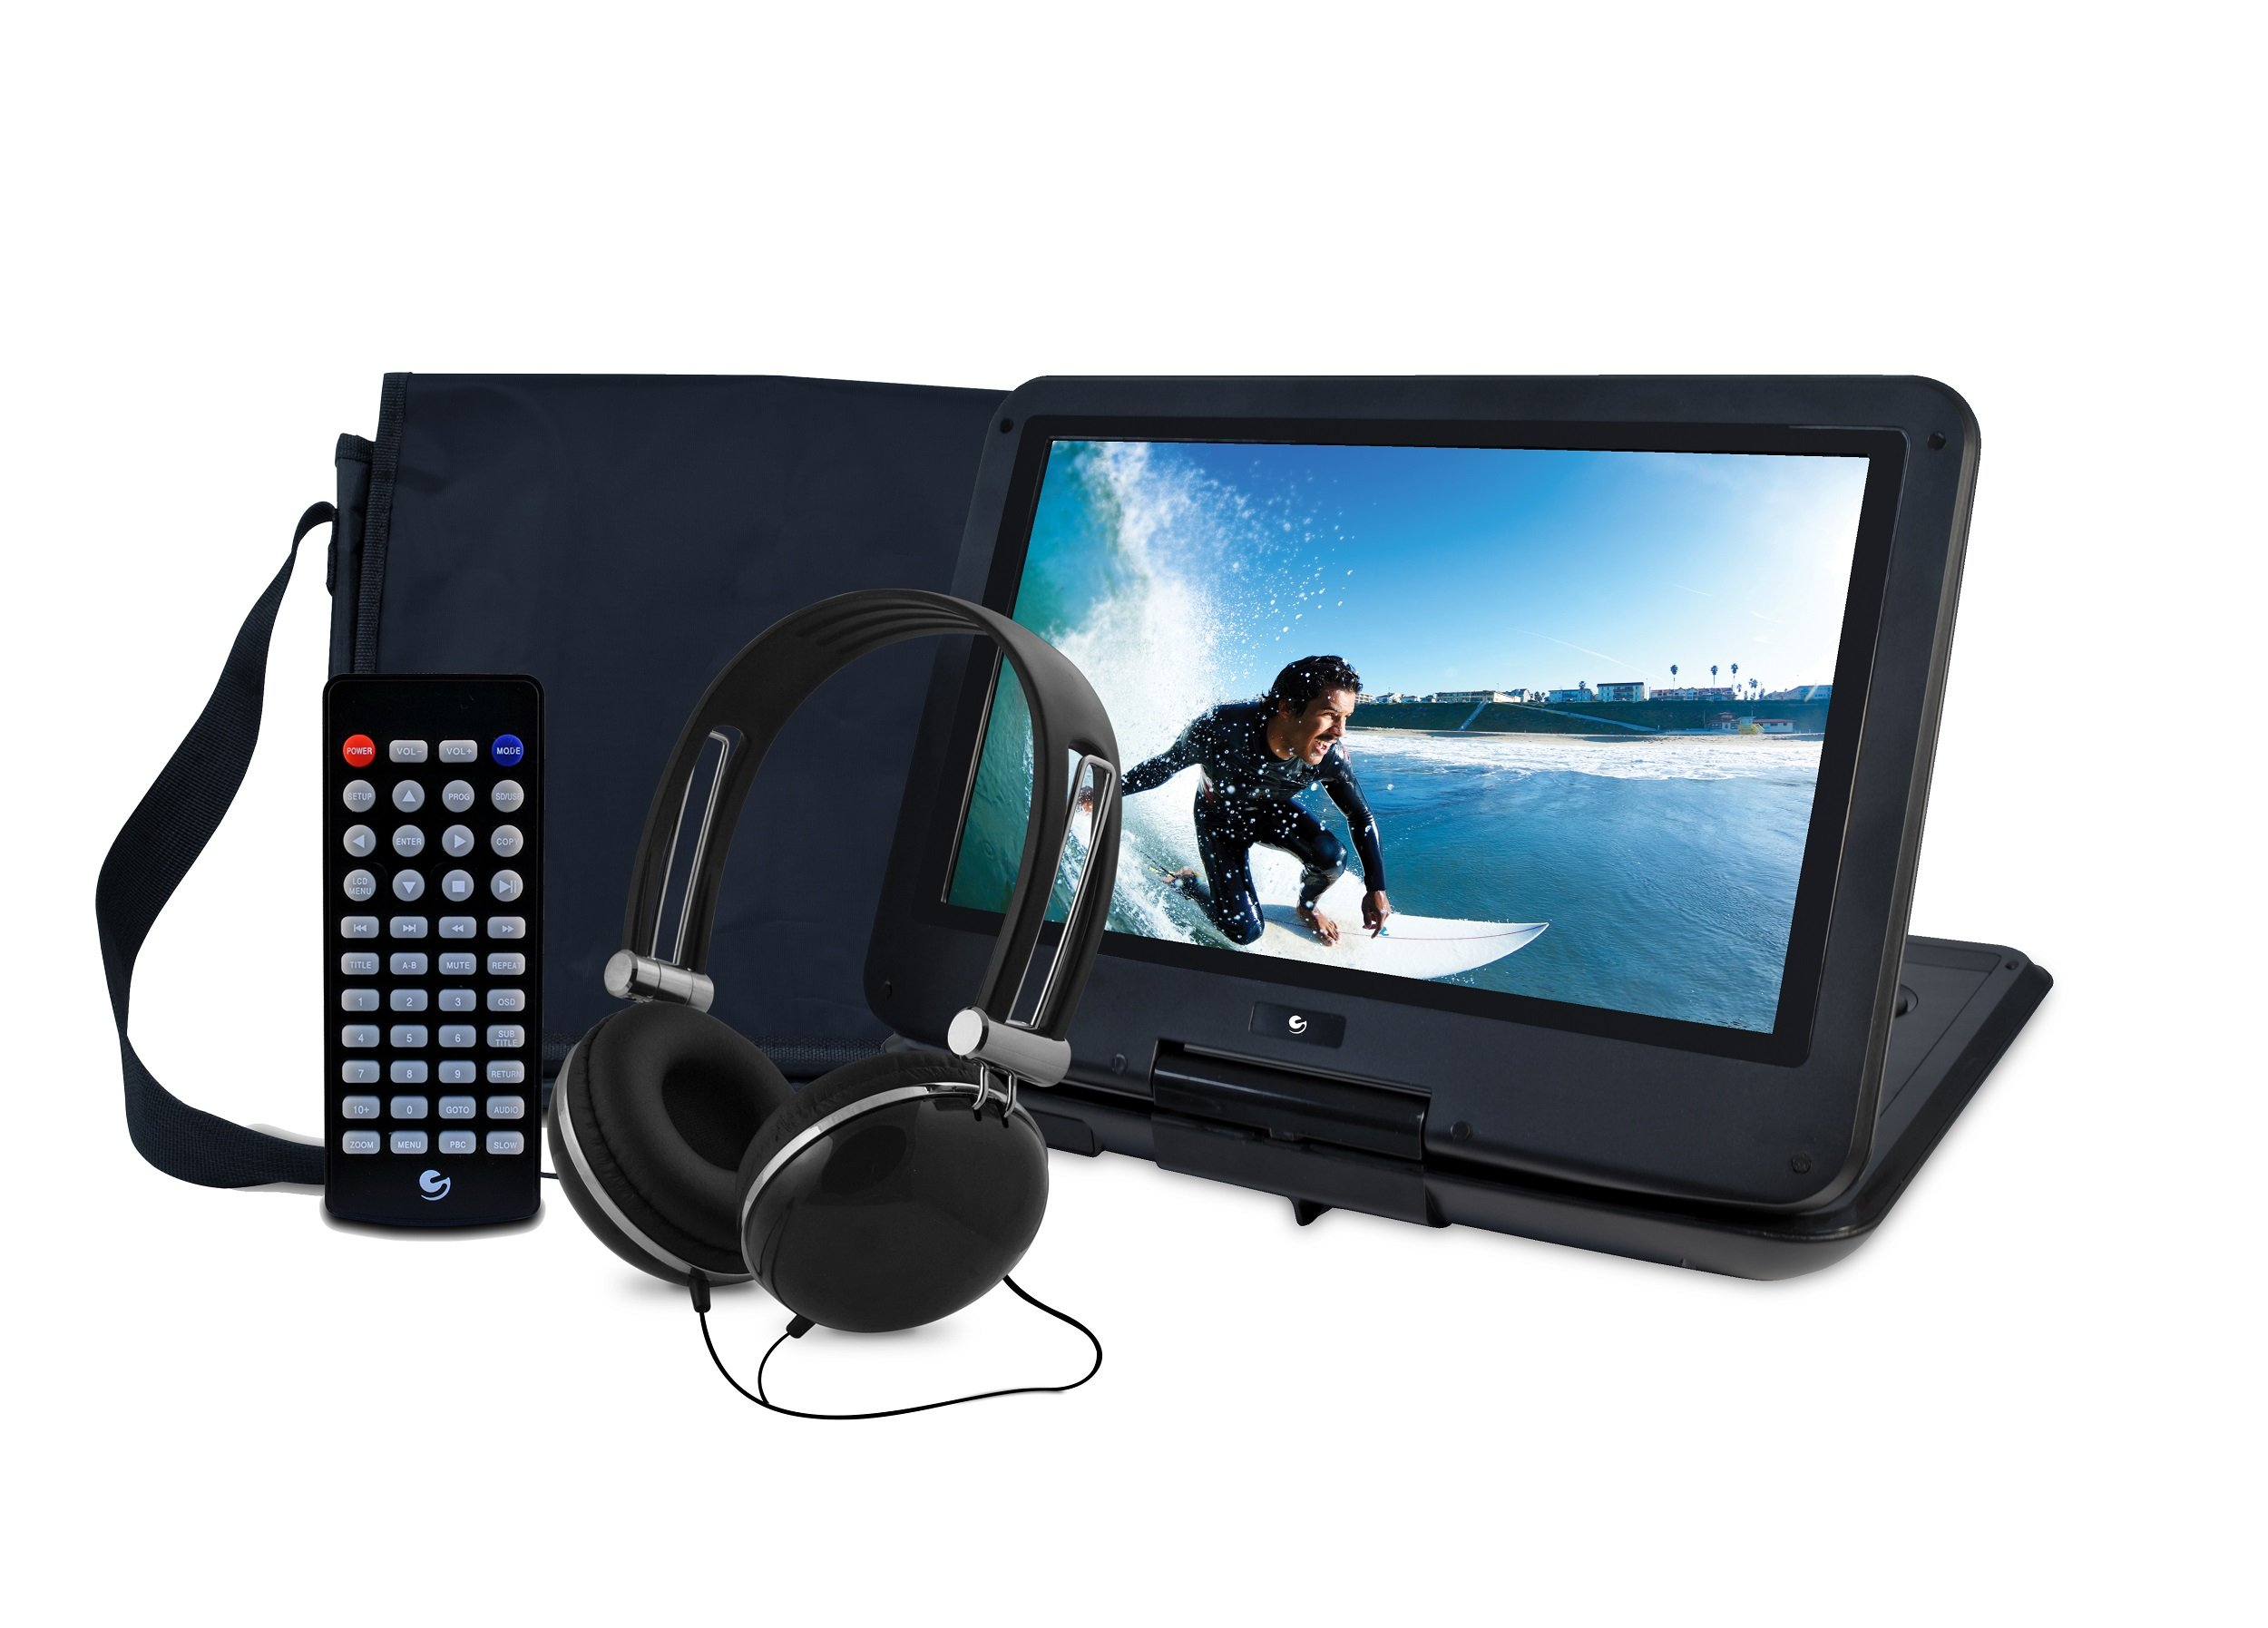 Ematic Portable DVD Player with 12-inch LCD Swivel Screen, Travel Bag, Headphones and Remote Control, Black